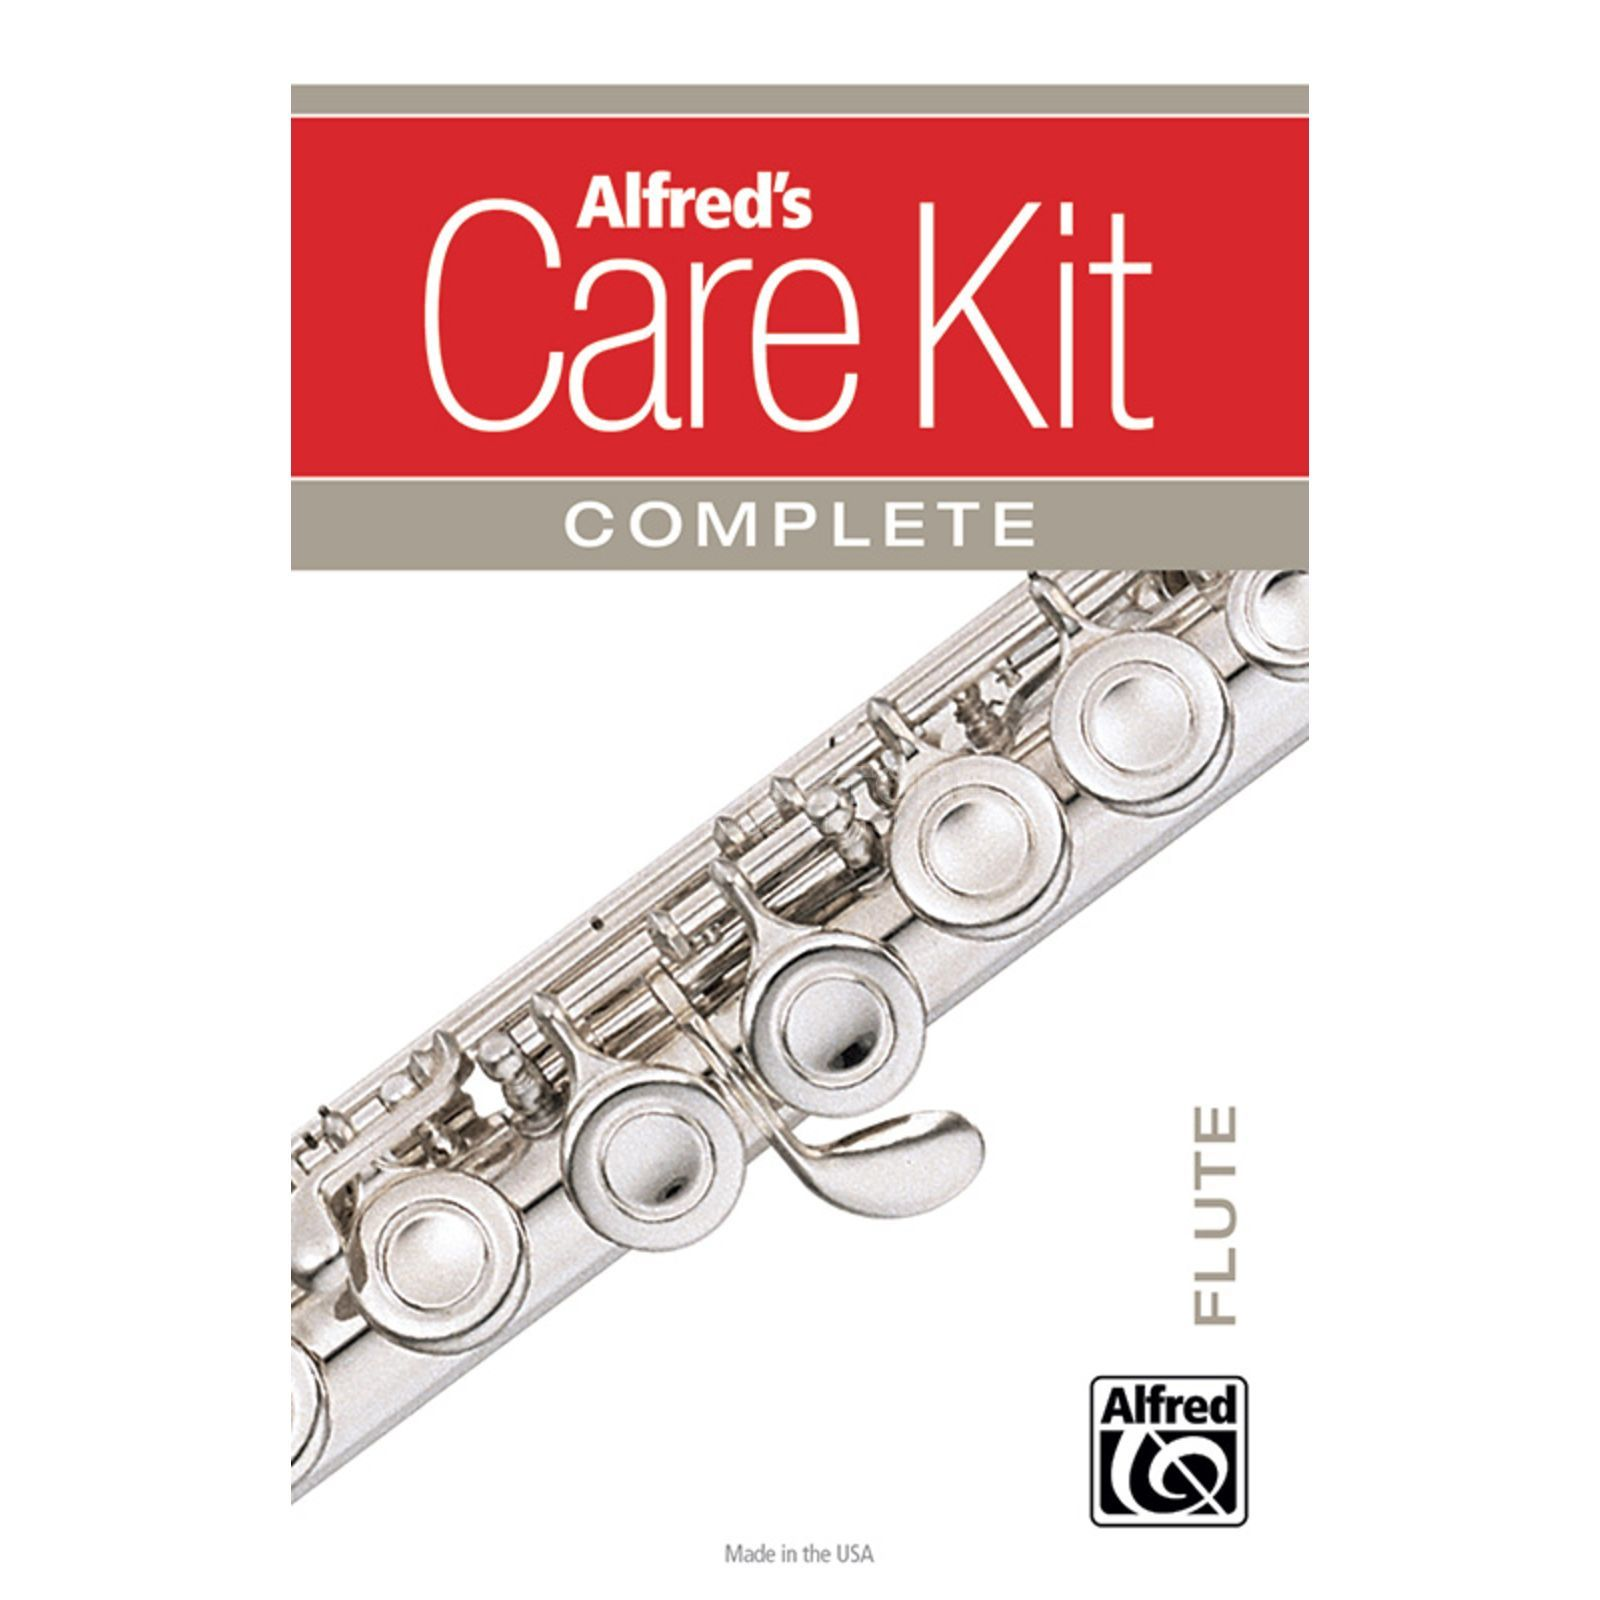 Alfred Music Care Kit Complete: Flute  Product Image